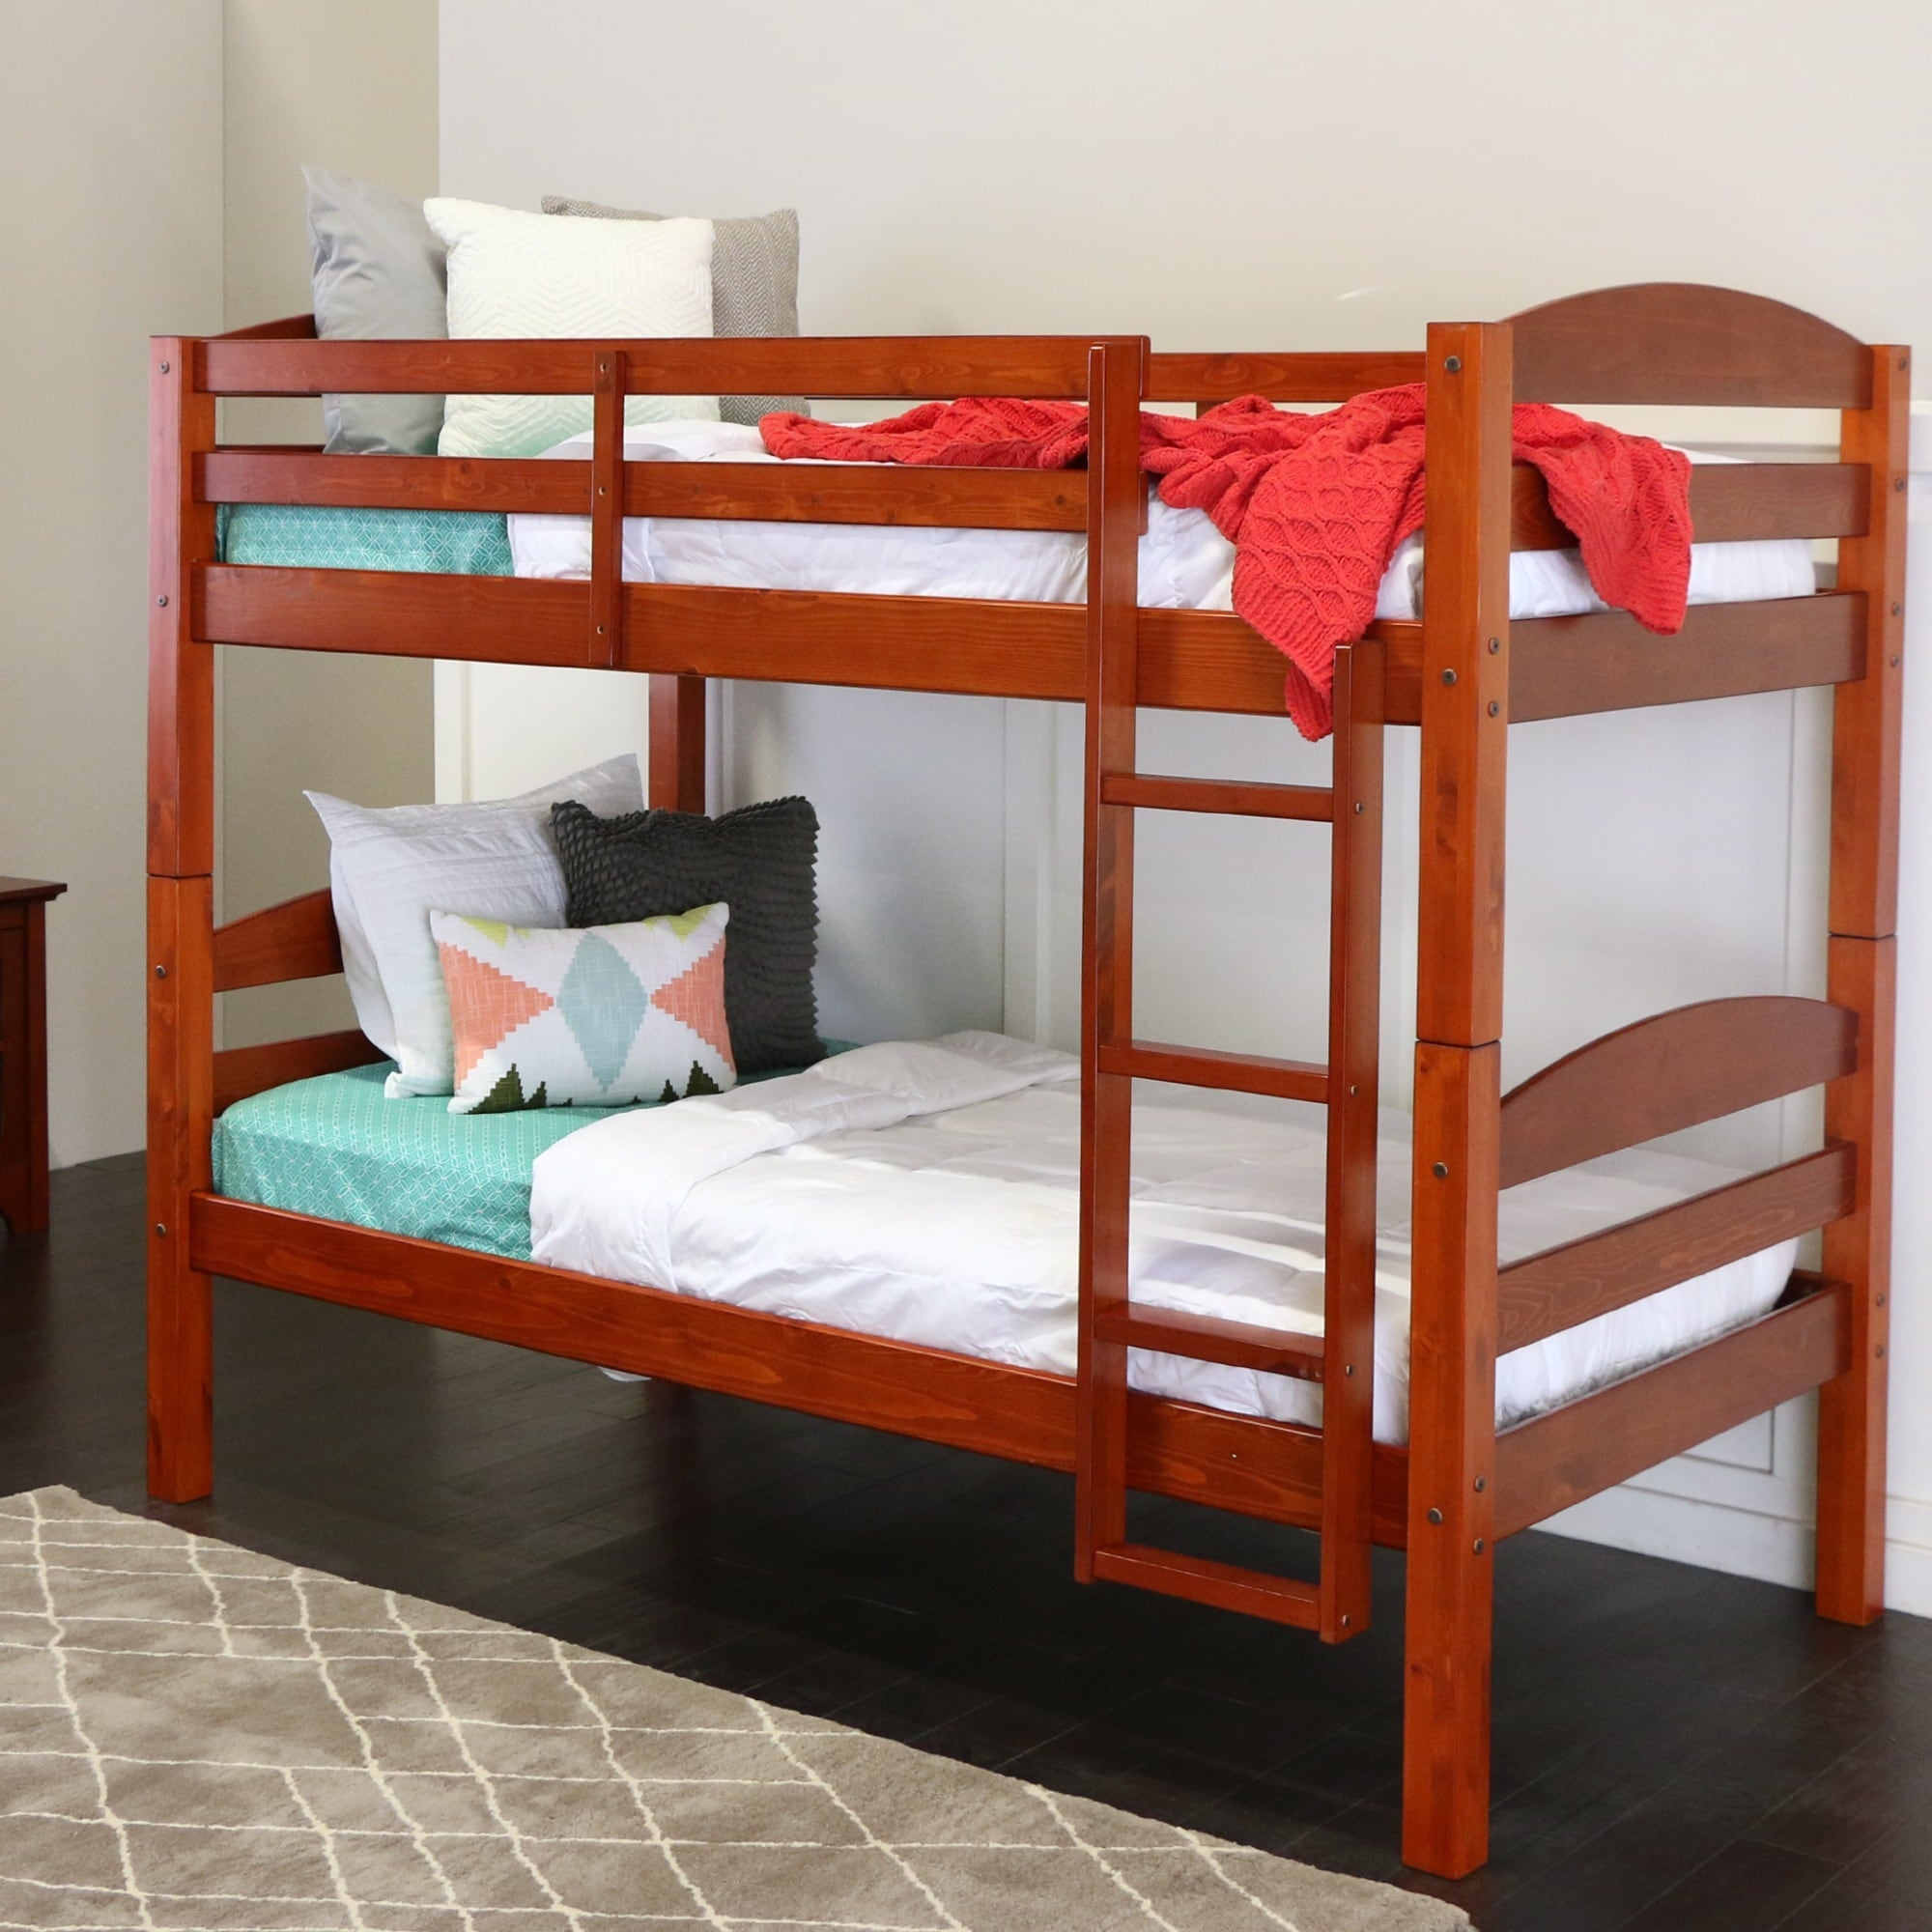 Solid Cherry Wood Twin Bunk Bed